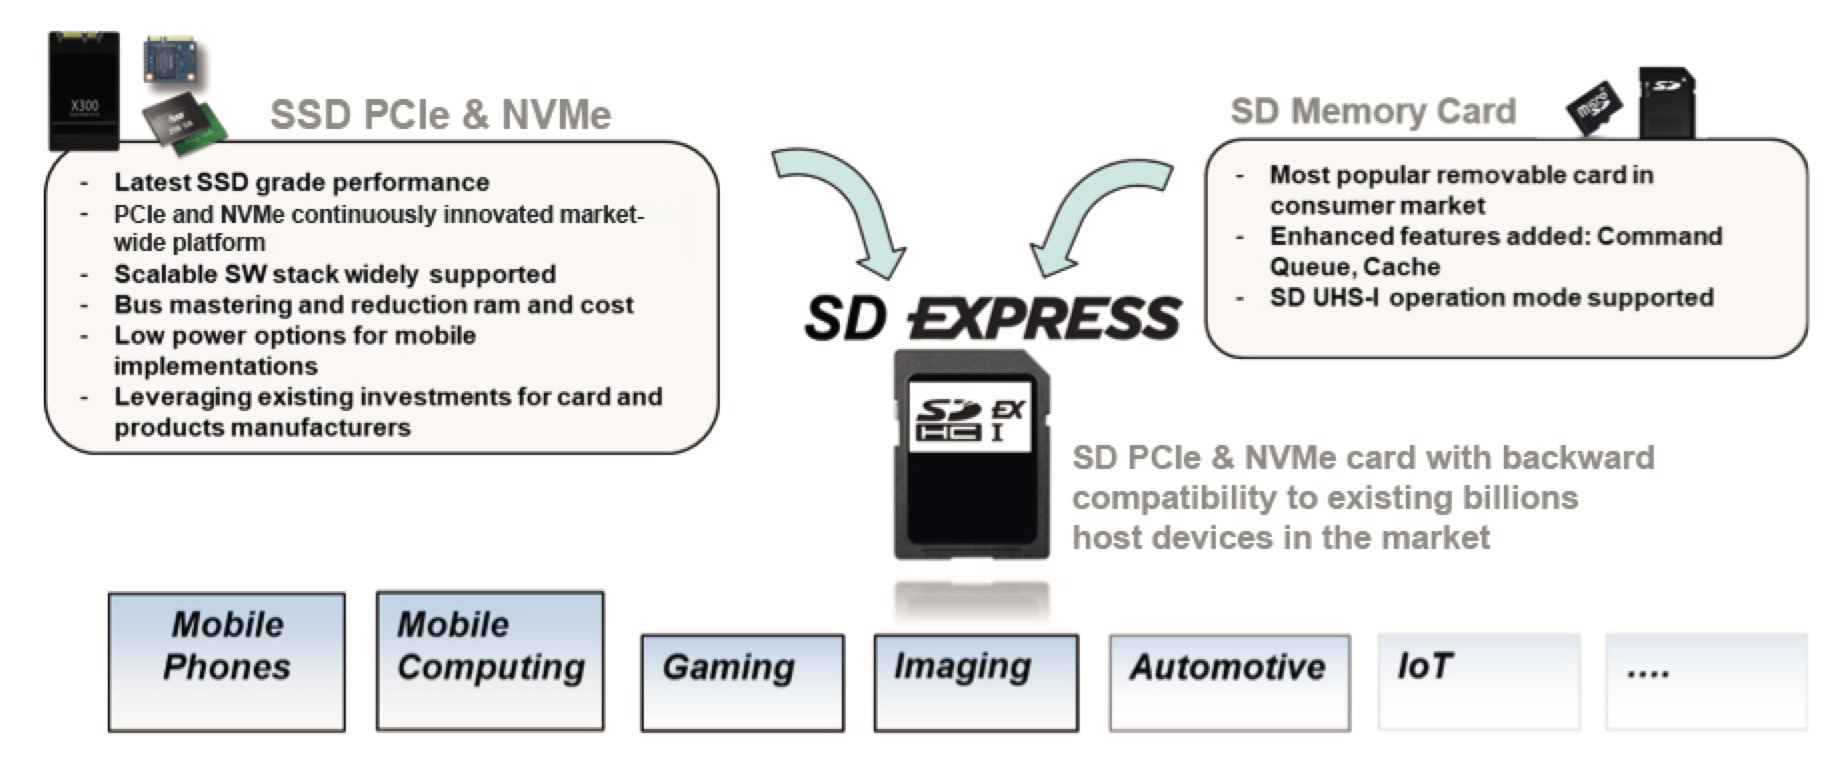 The new SD Express specification introduces PCIe 3.0 and NVMe 1.3 interface support